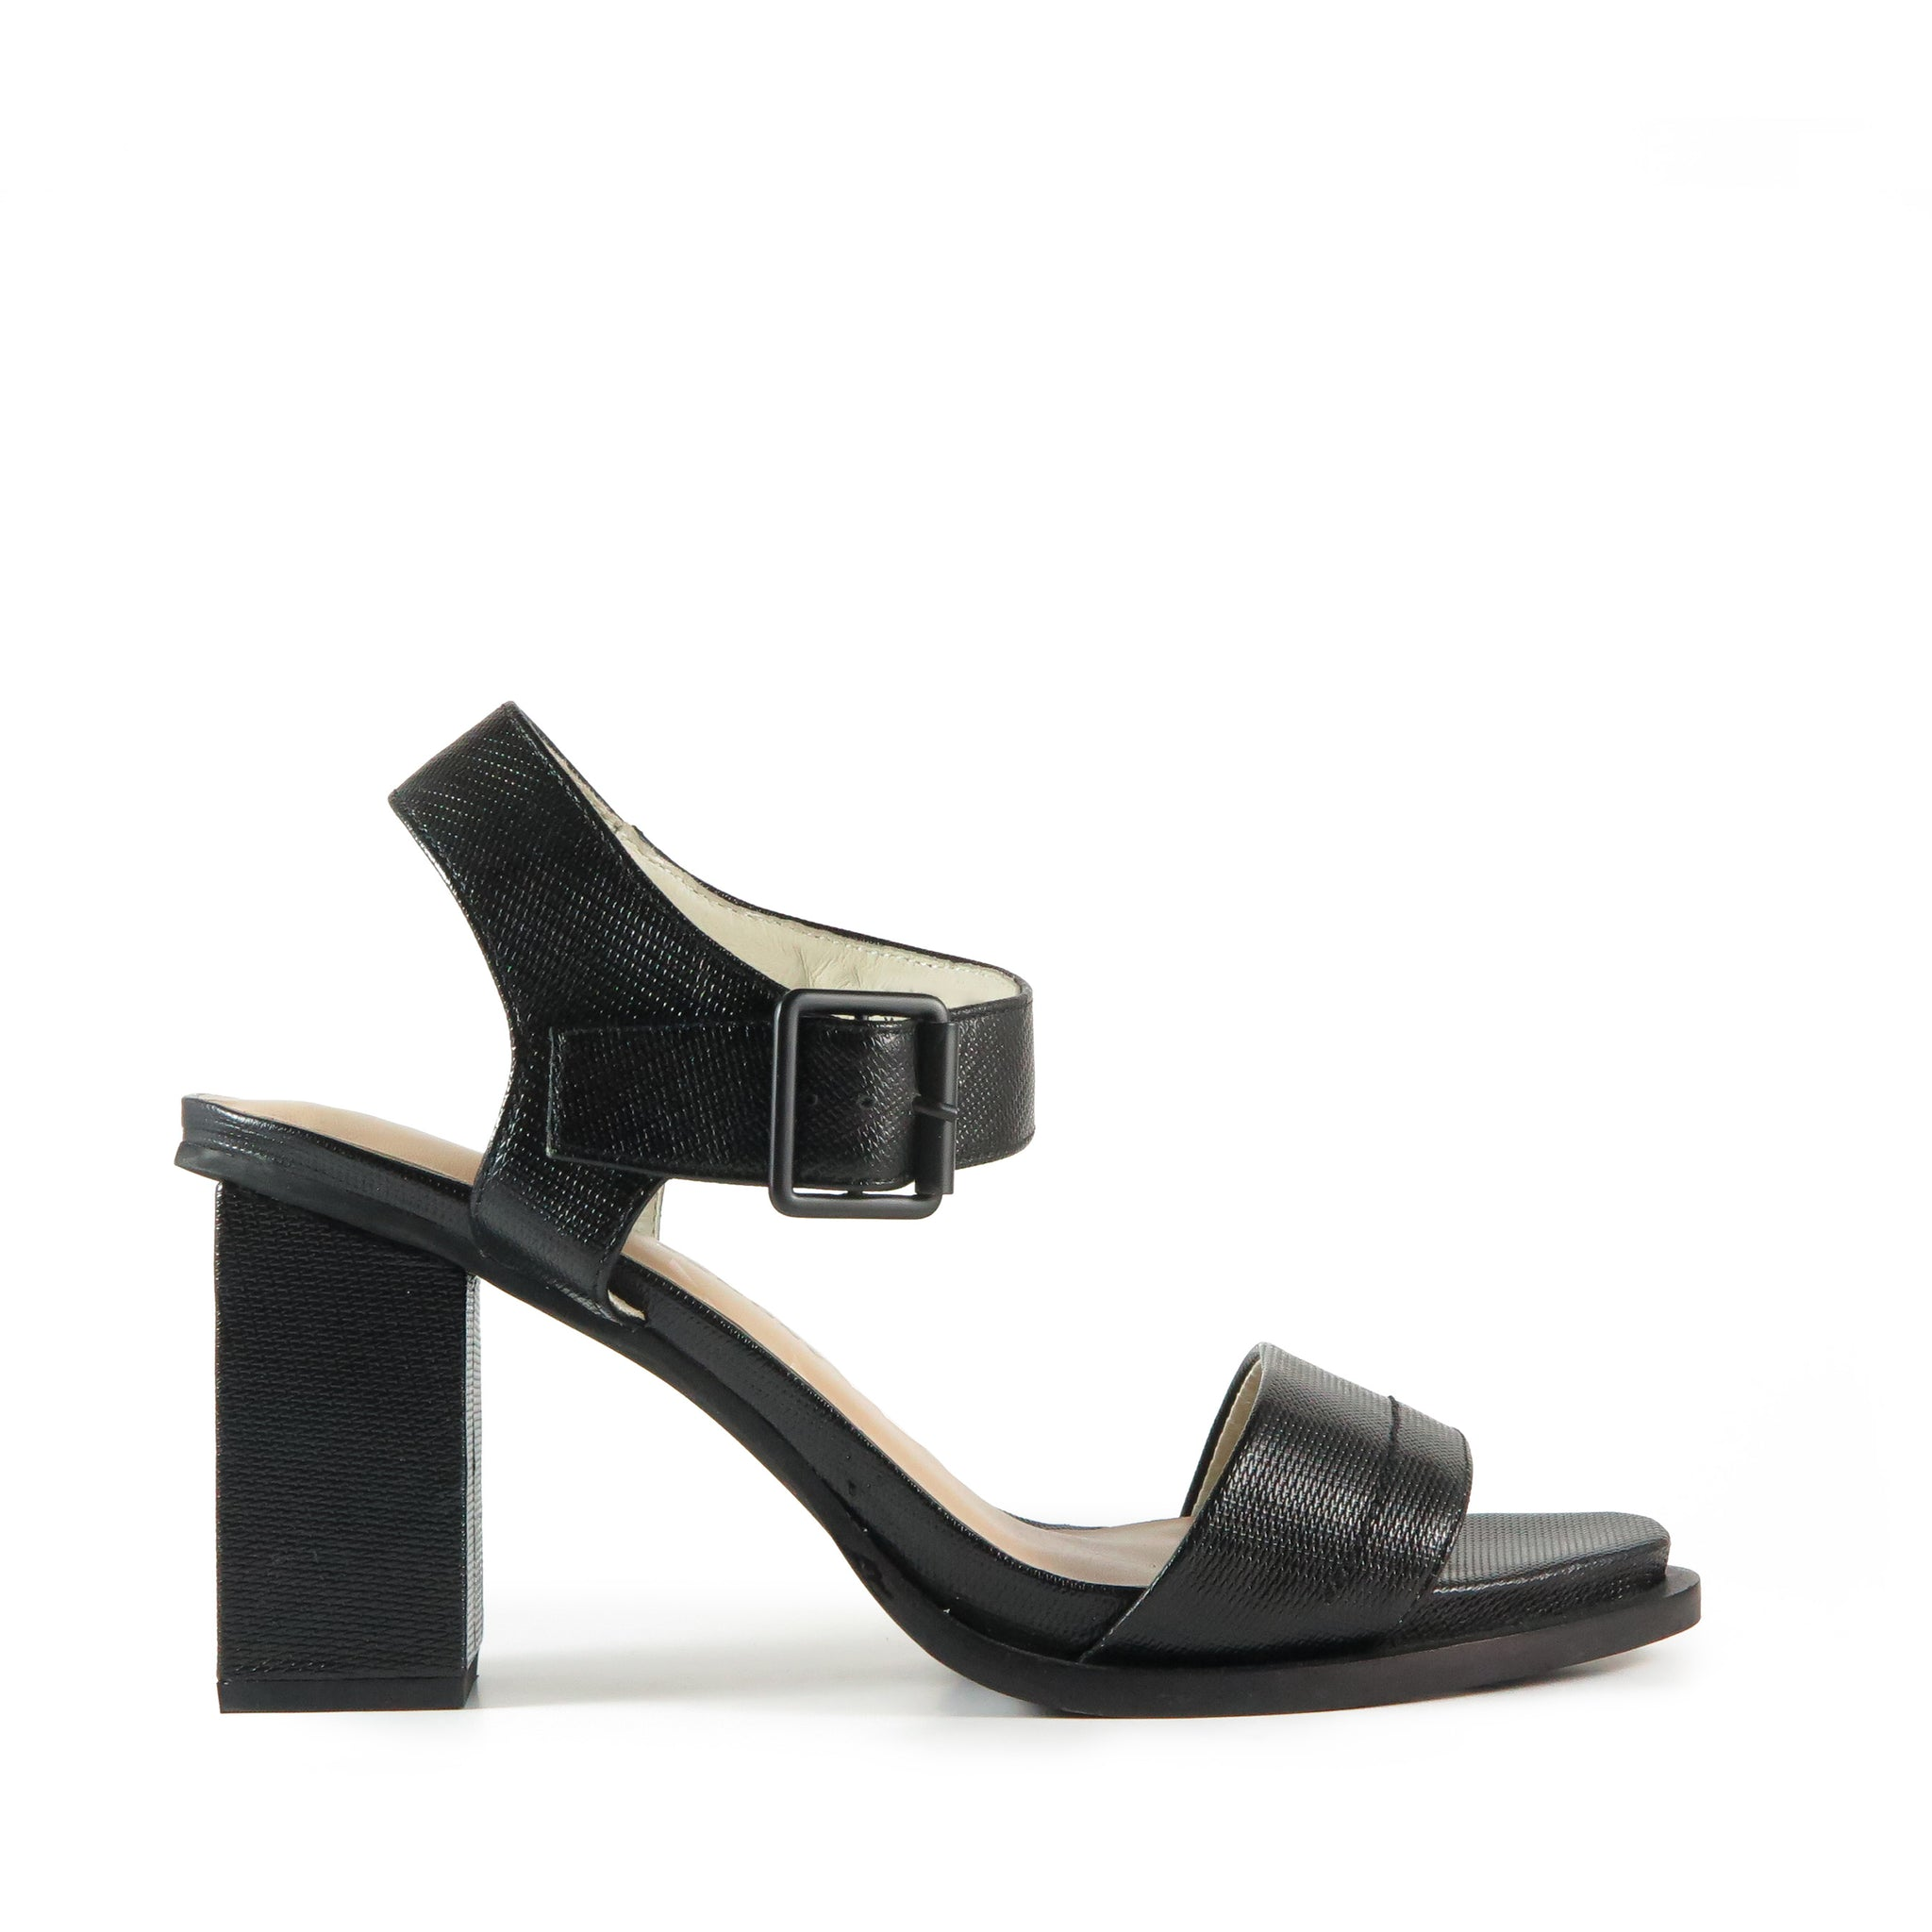 High heel sandal, black textured leather, Chaos & Harmony, New Zealand fashion, Shibusa